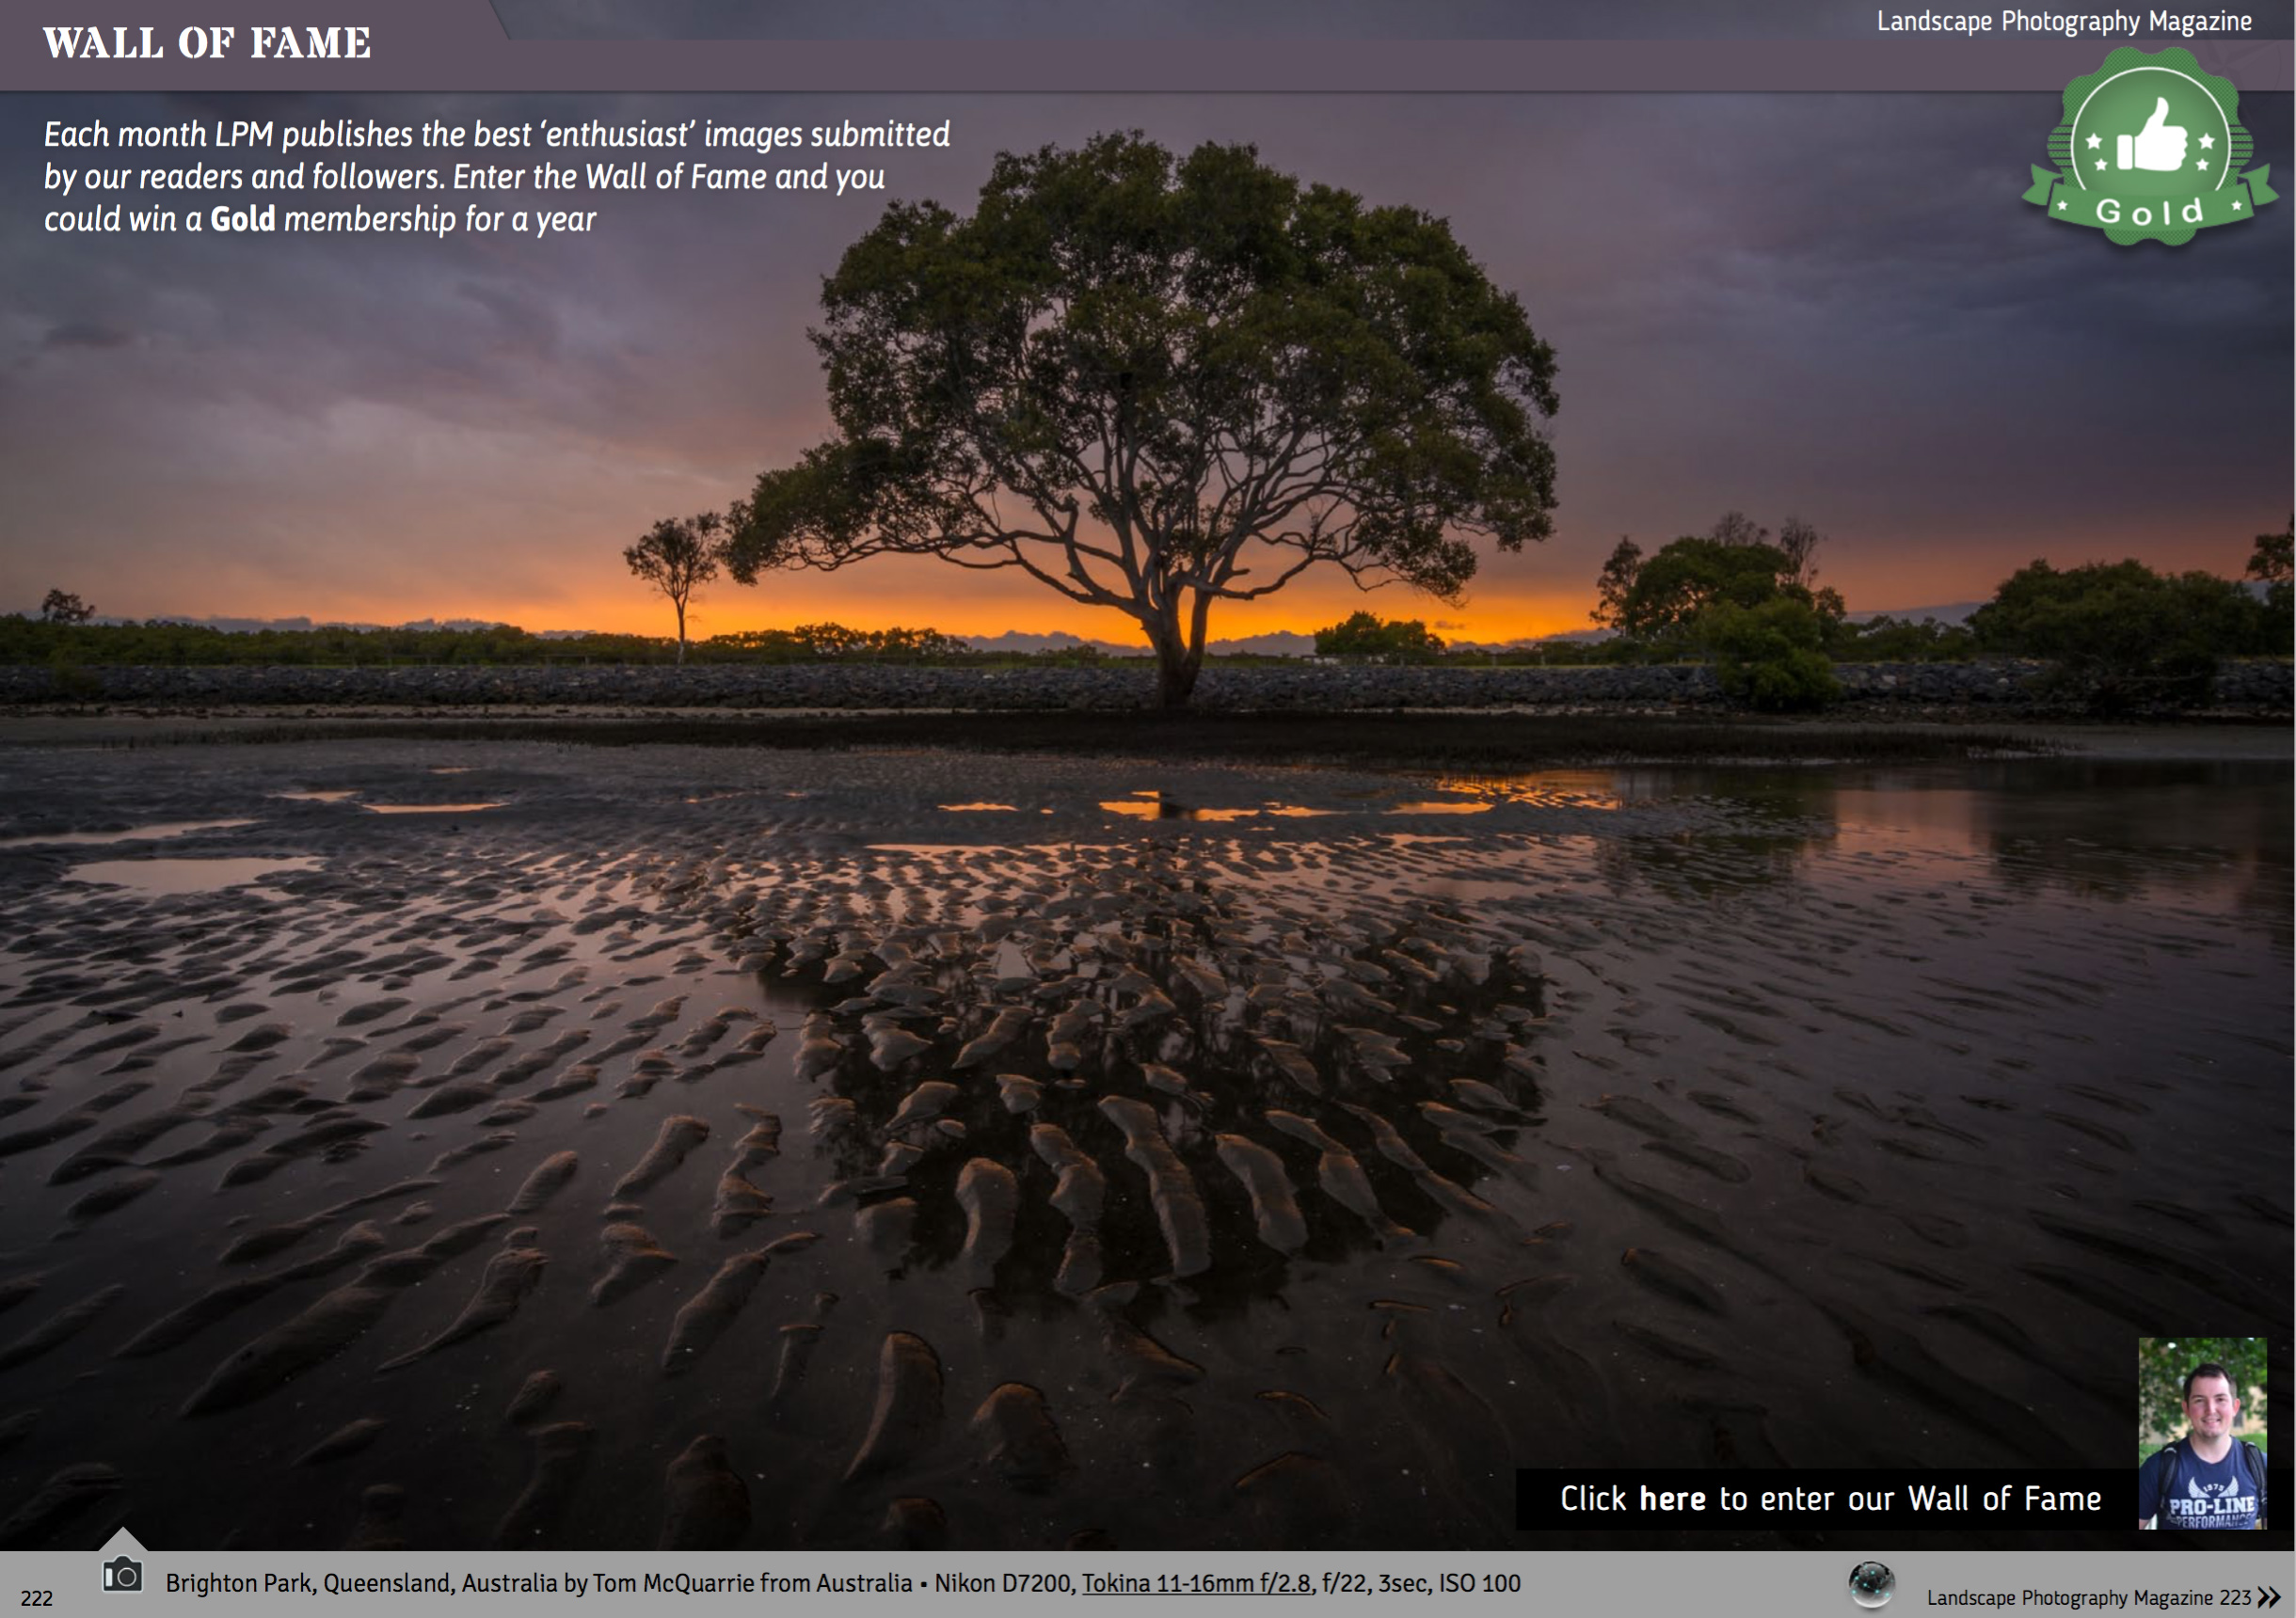 Now featured in Landscape Photography Magazine!